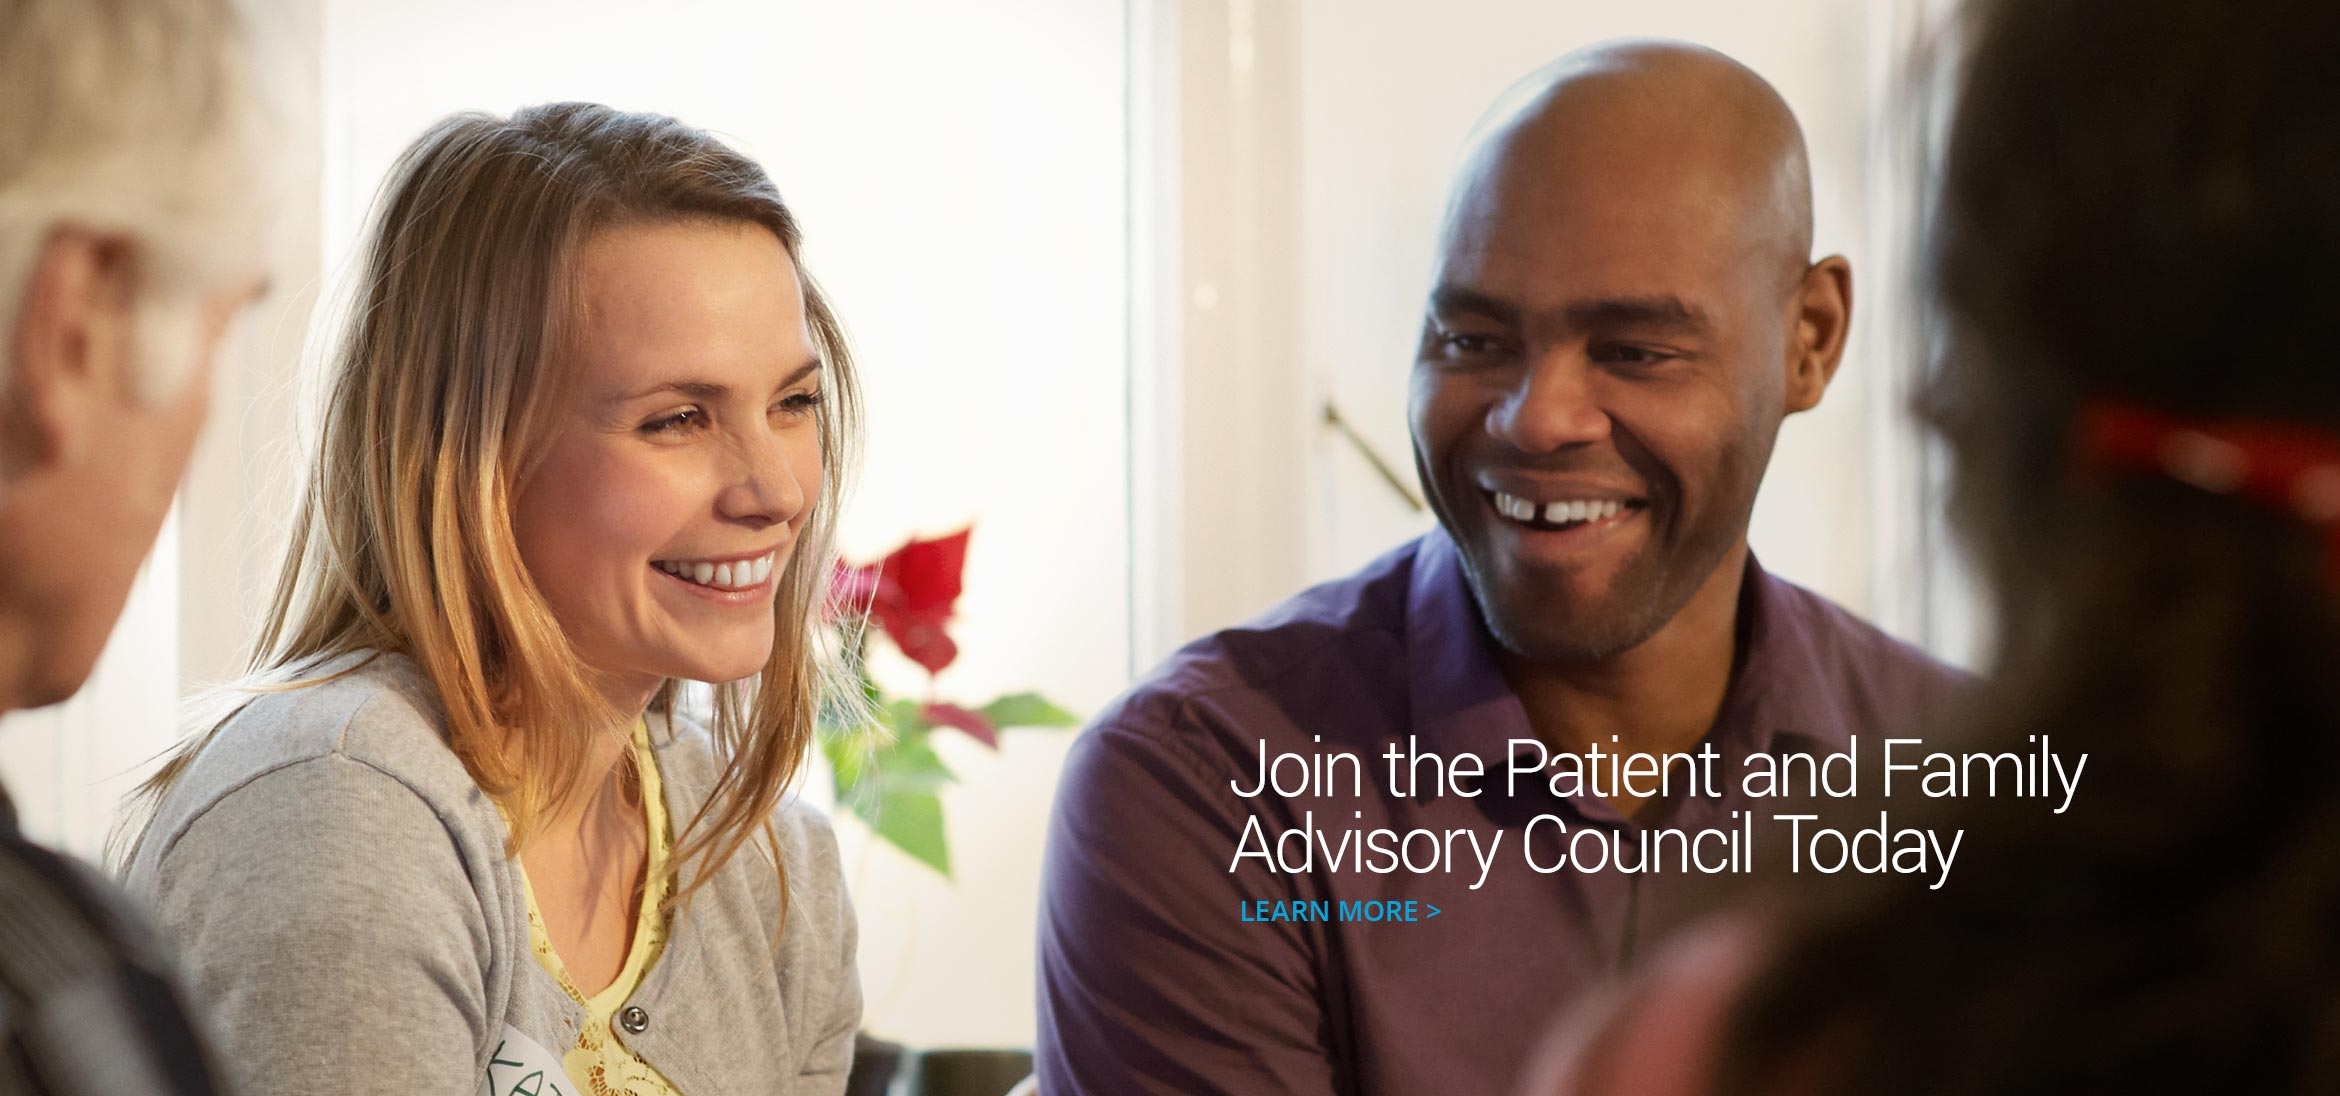 Join the Patient and Family Advisory Council Today